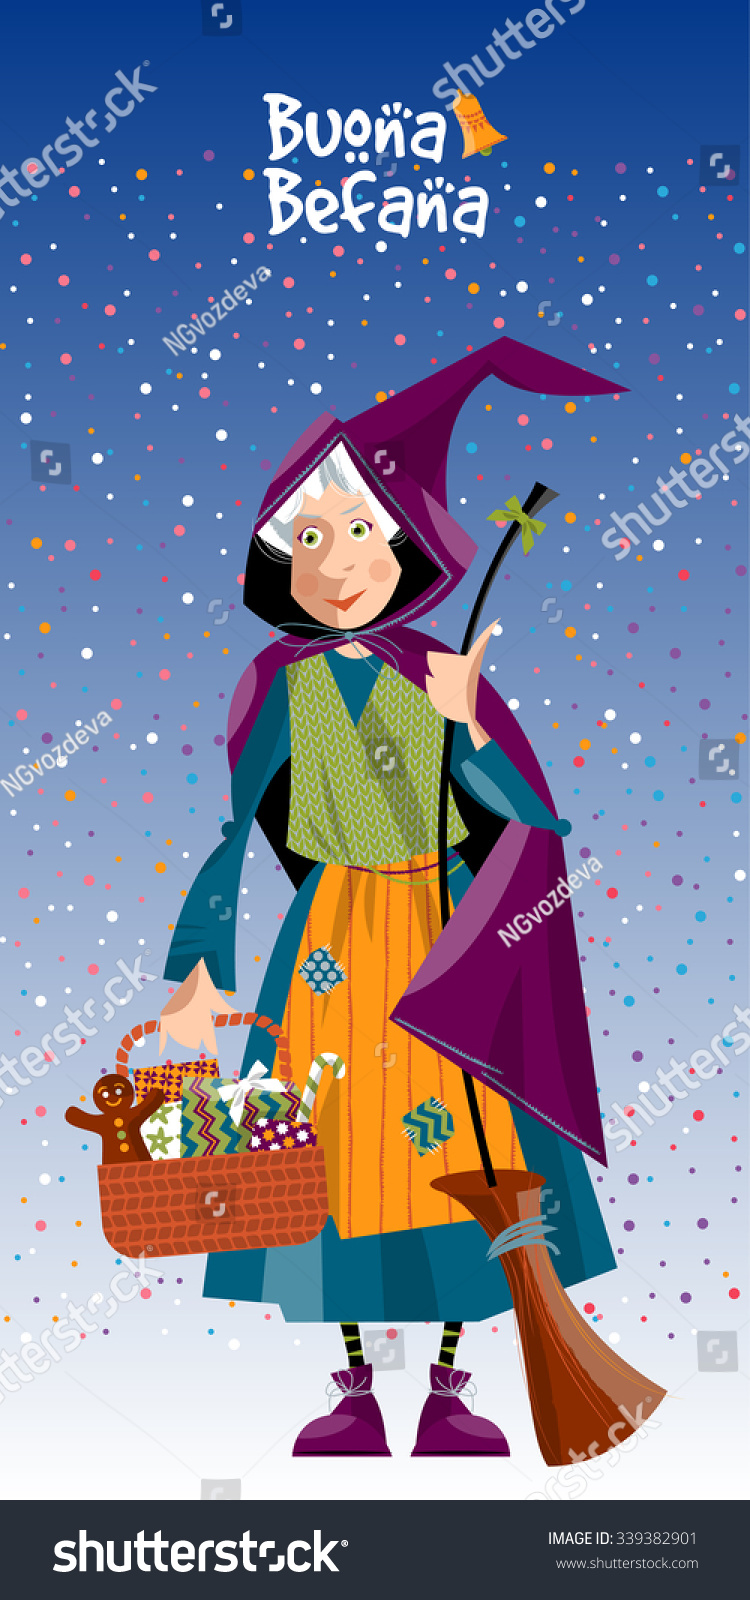 Greeting Card Buona Befana Happy Epiphany Stock Vector Royalty Free